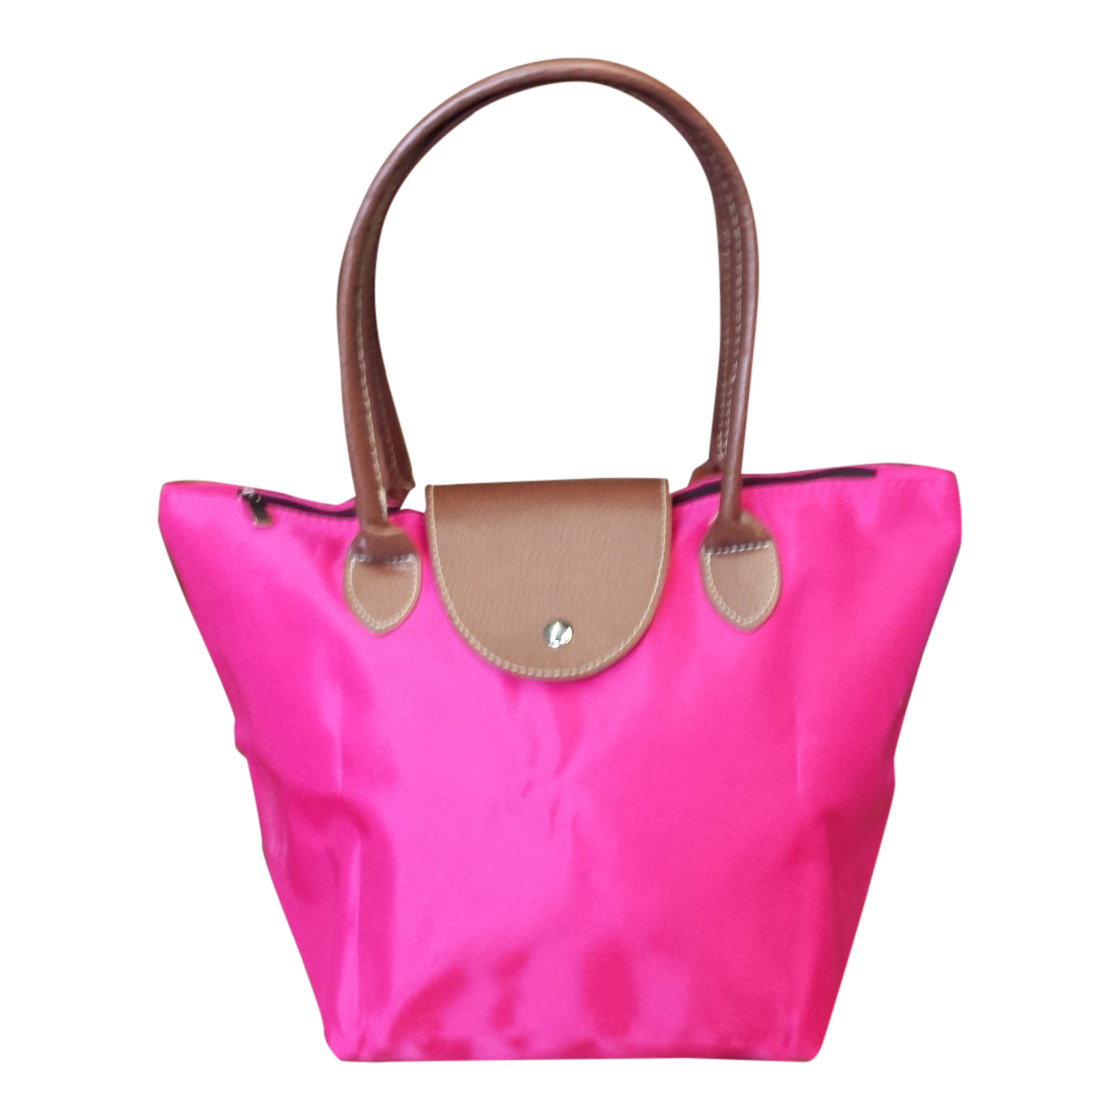 Benzi city bag S Roma roze 4388